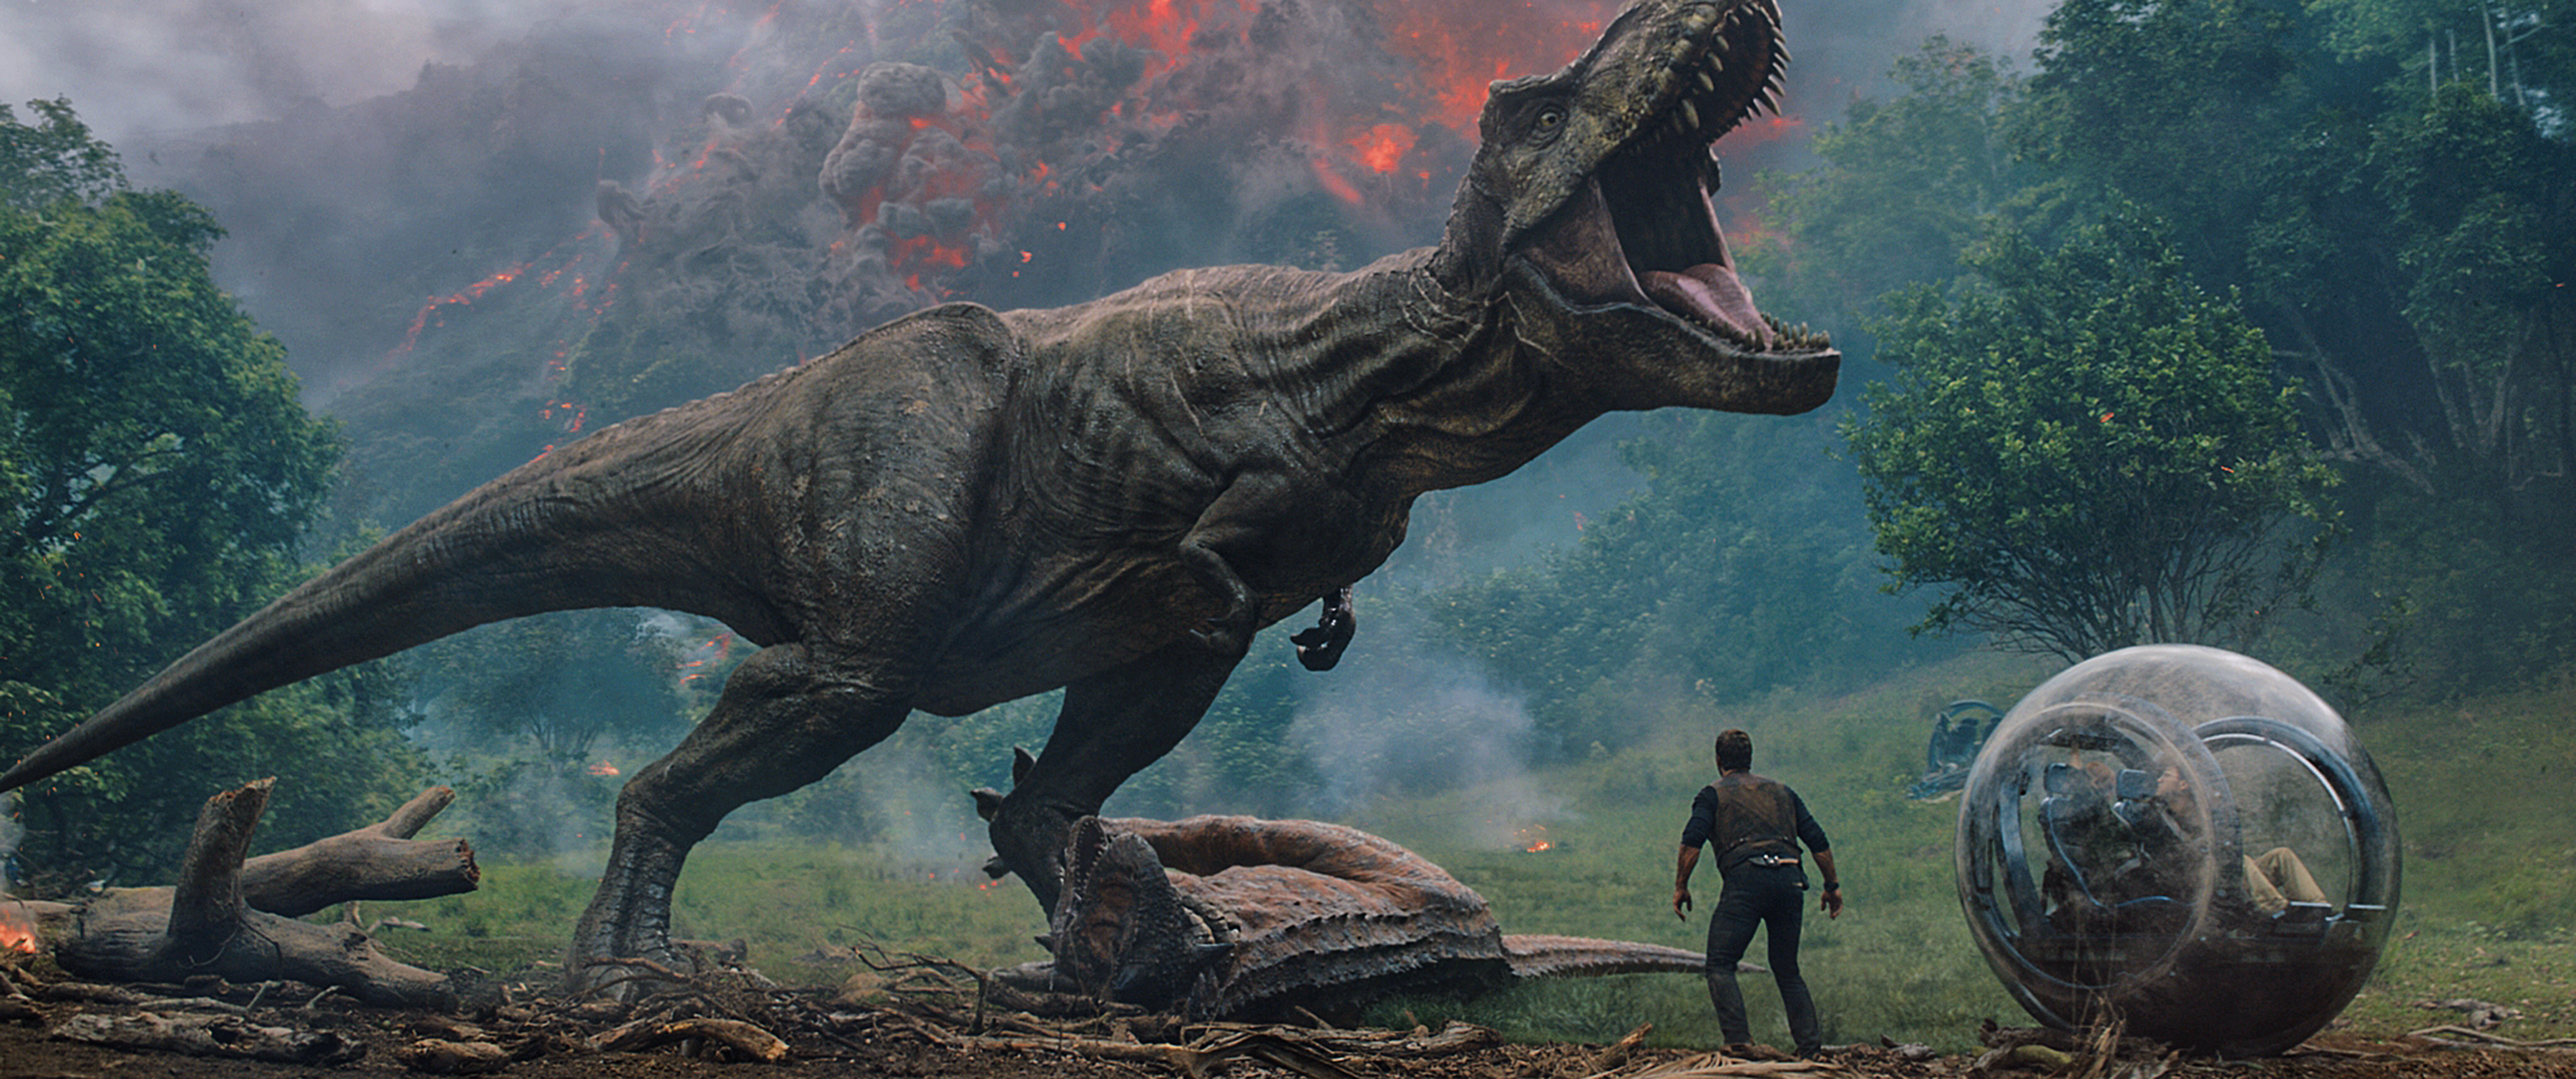 Jurassic World: Fallen Kingdom 6